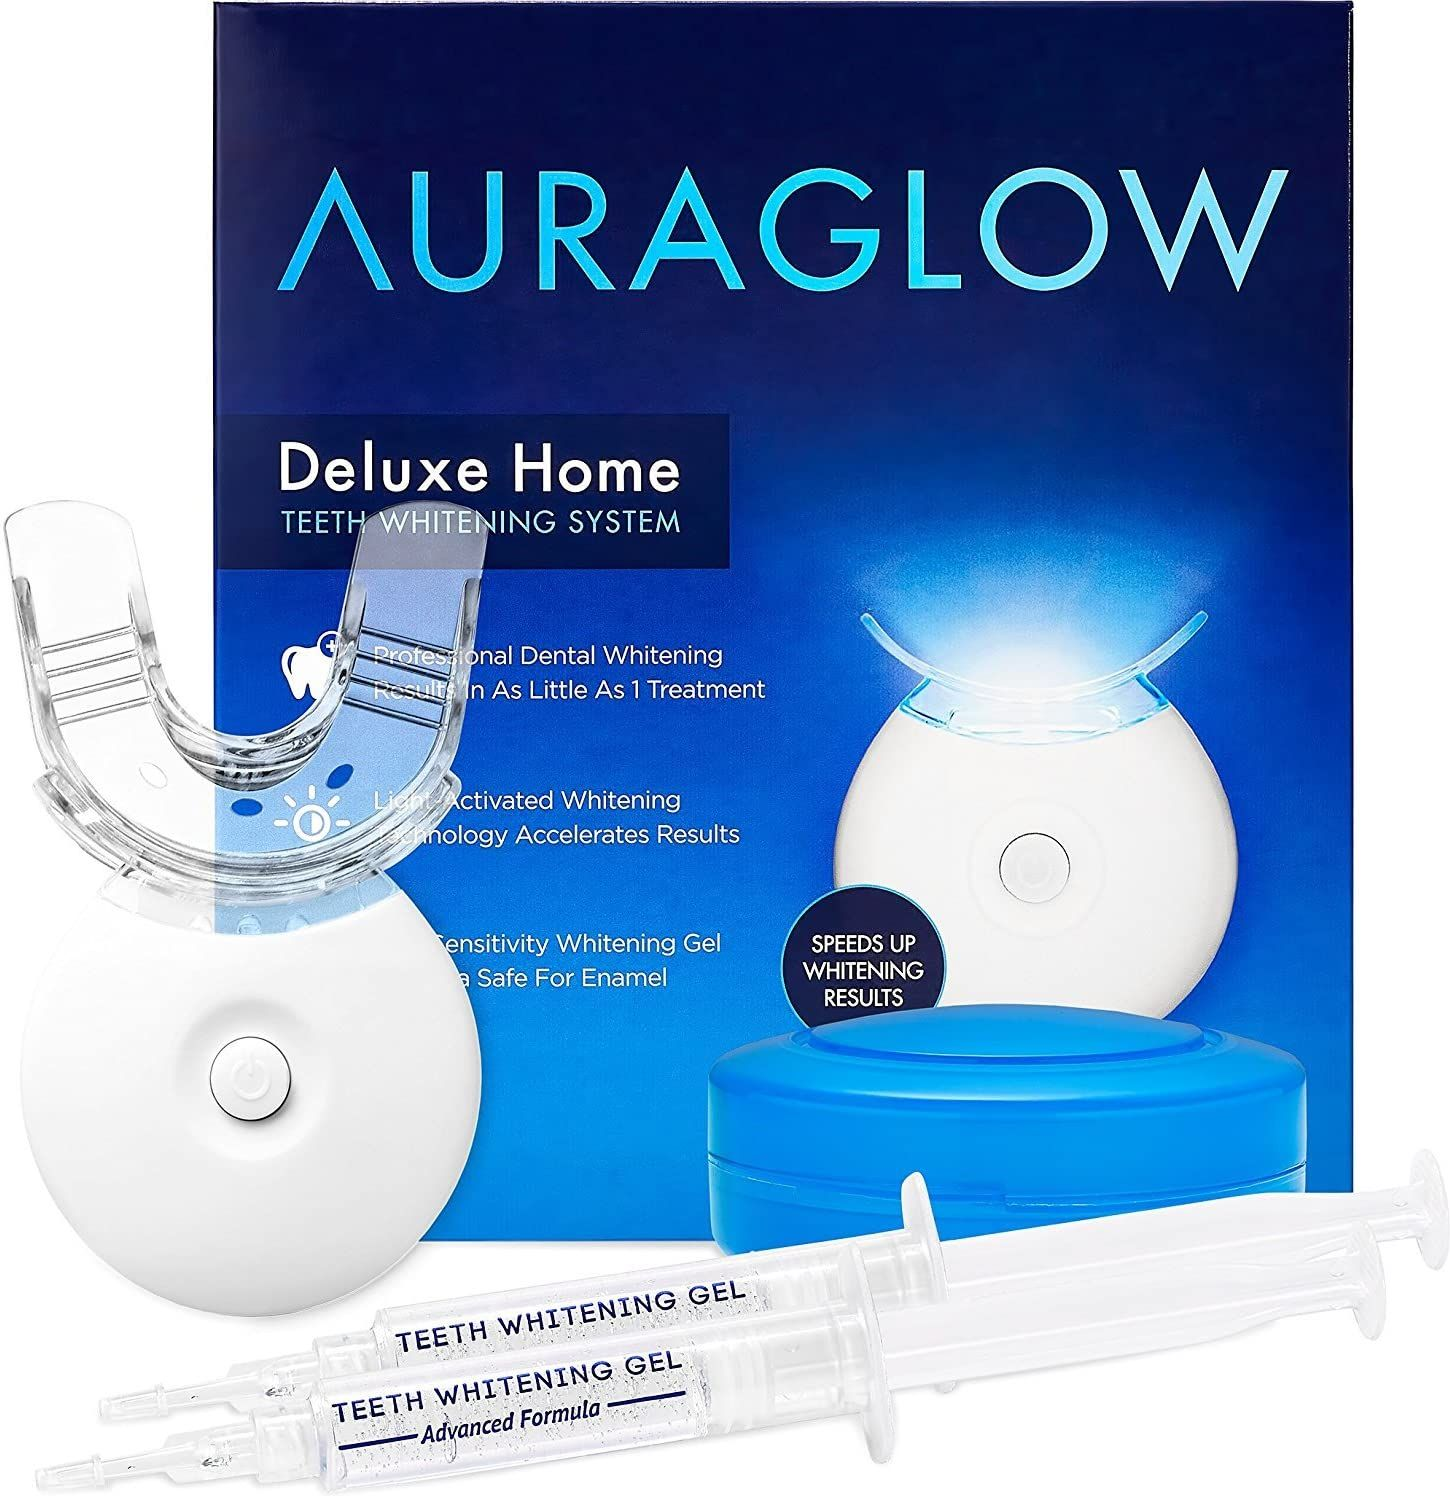 Up to 50% off AuraGlow Teeth Whitening Products at Amazon